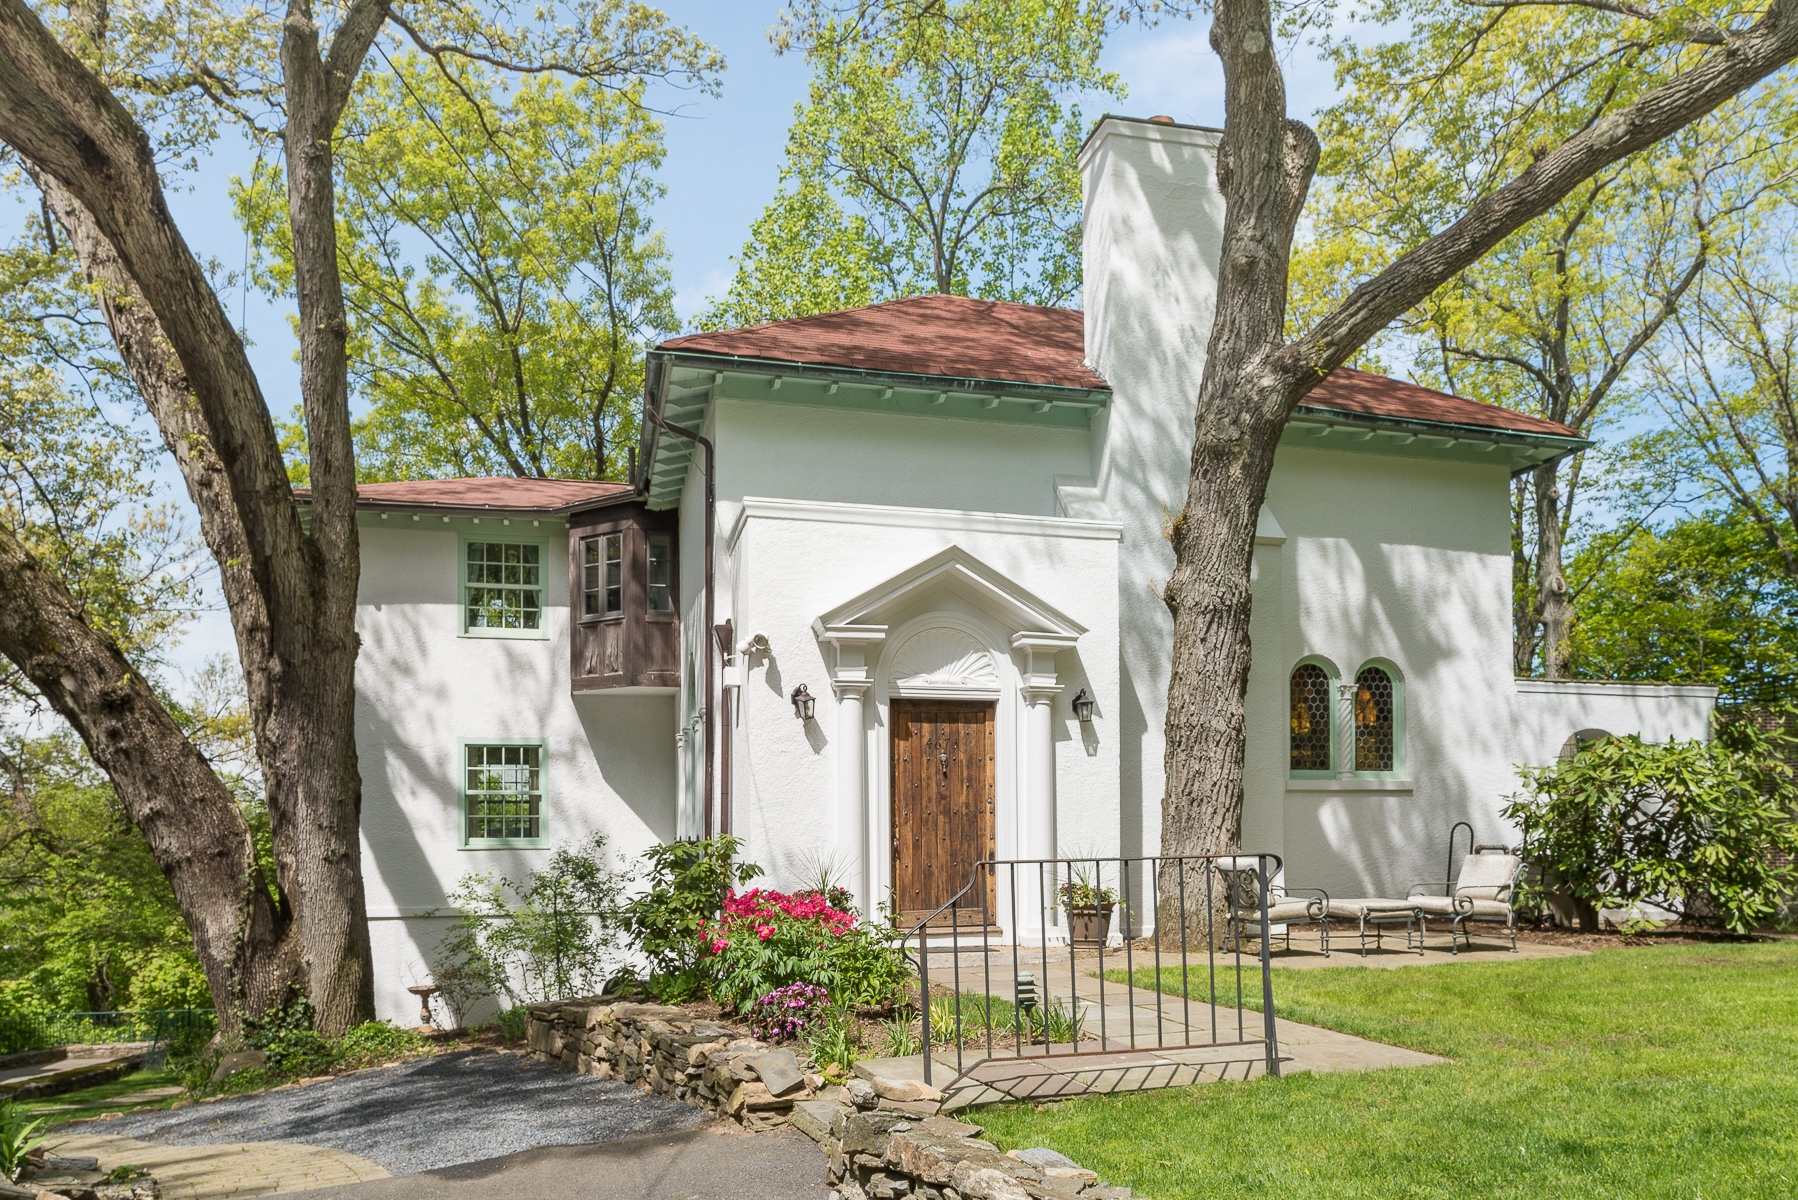 Single Family Home for Sale at Fieldston Mediterranean Revival 4673 Delafield Avenue Riverdale, New York, 10471 United States